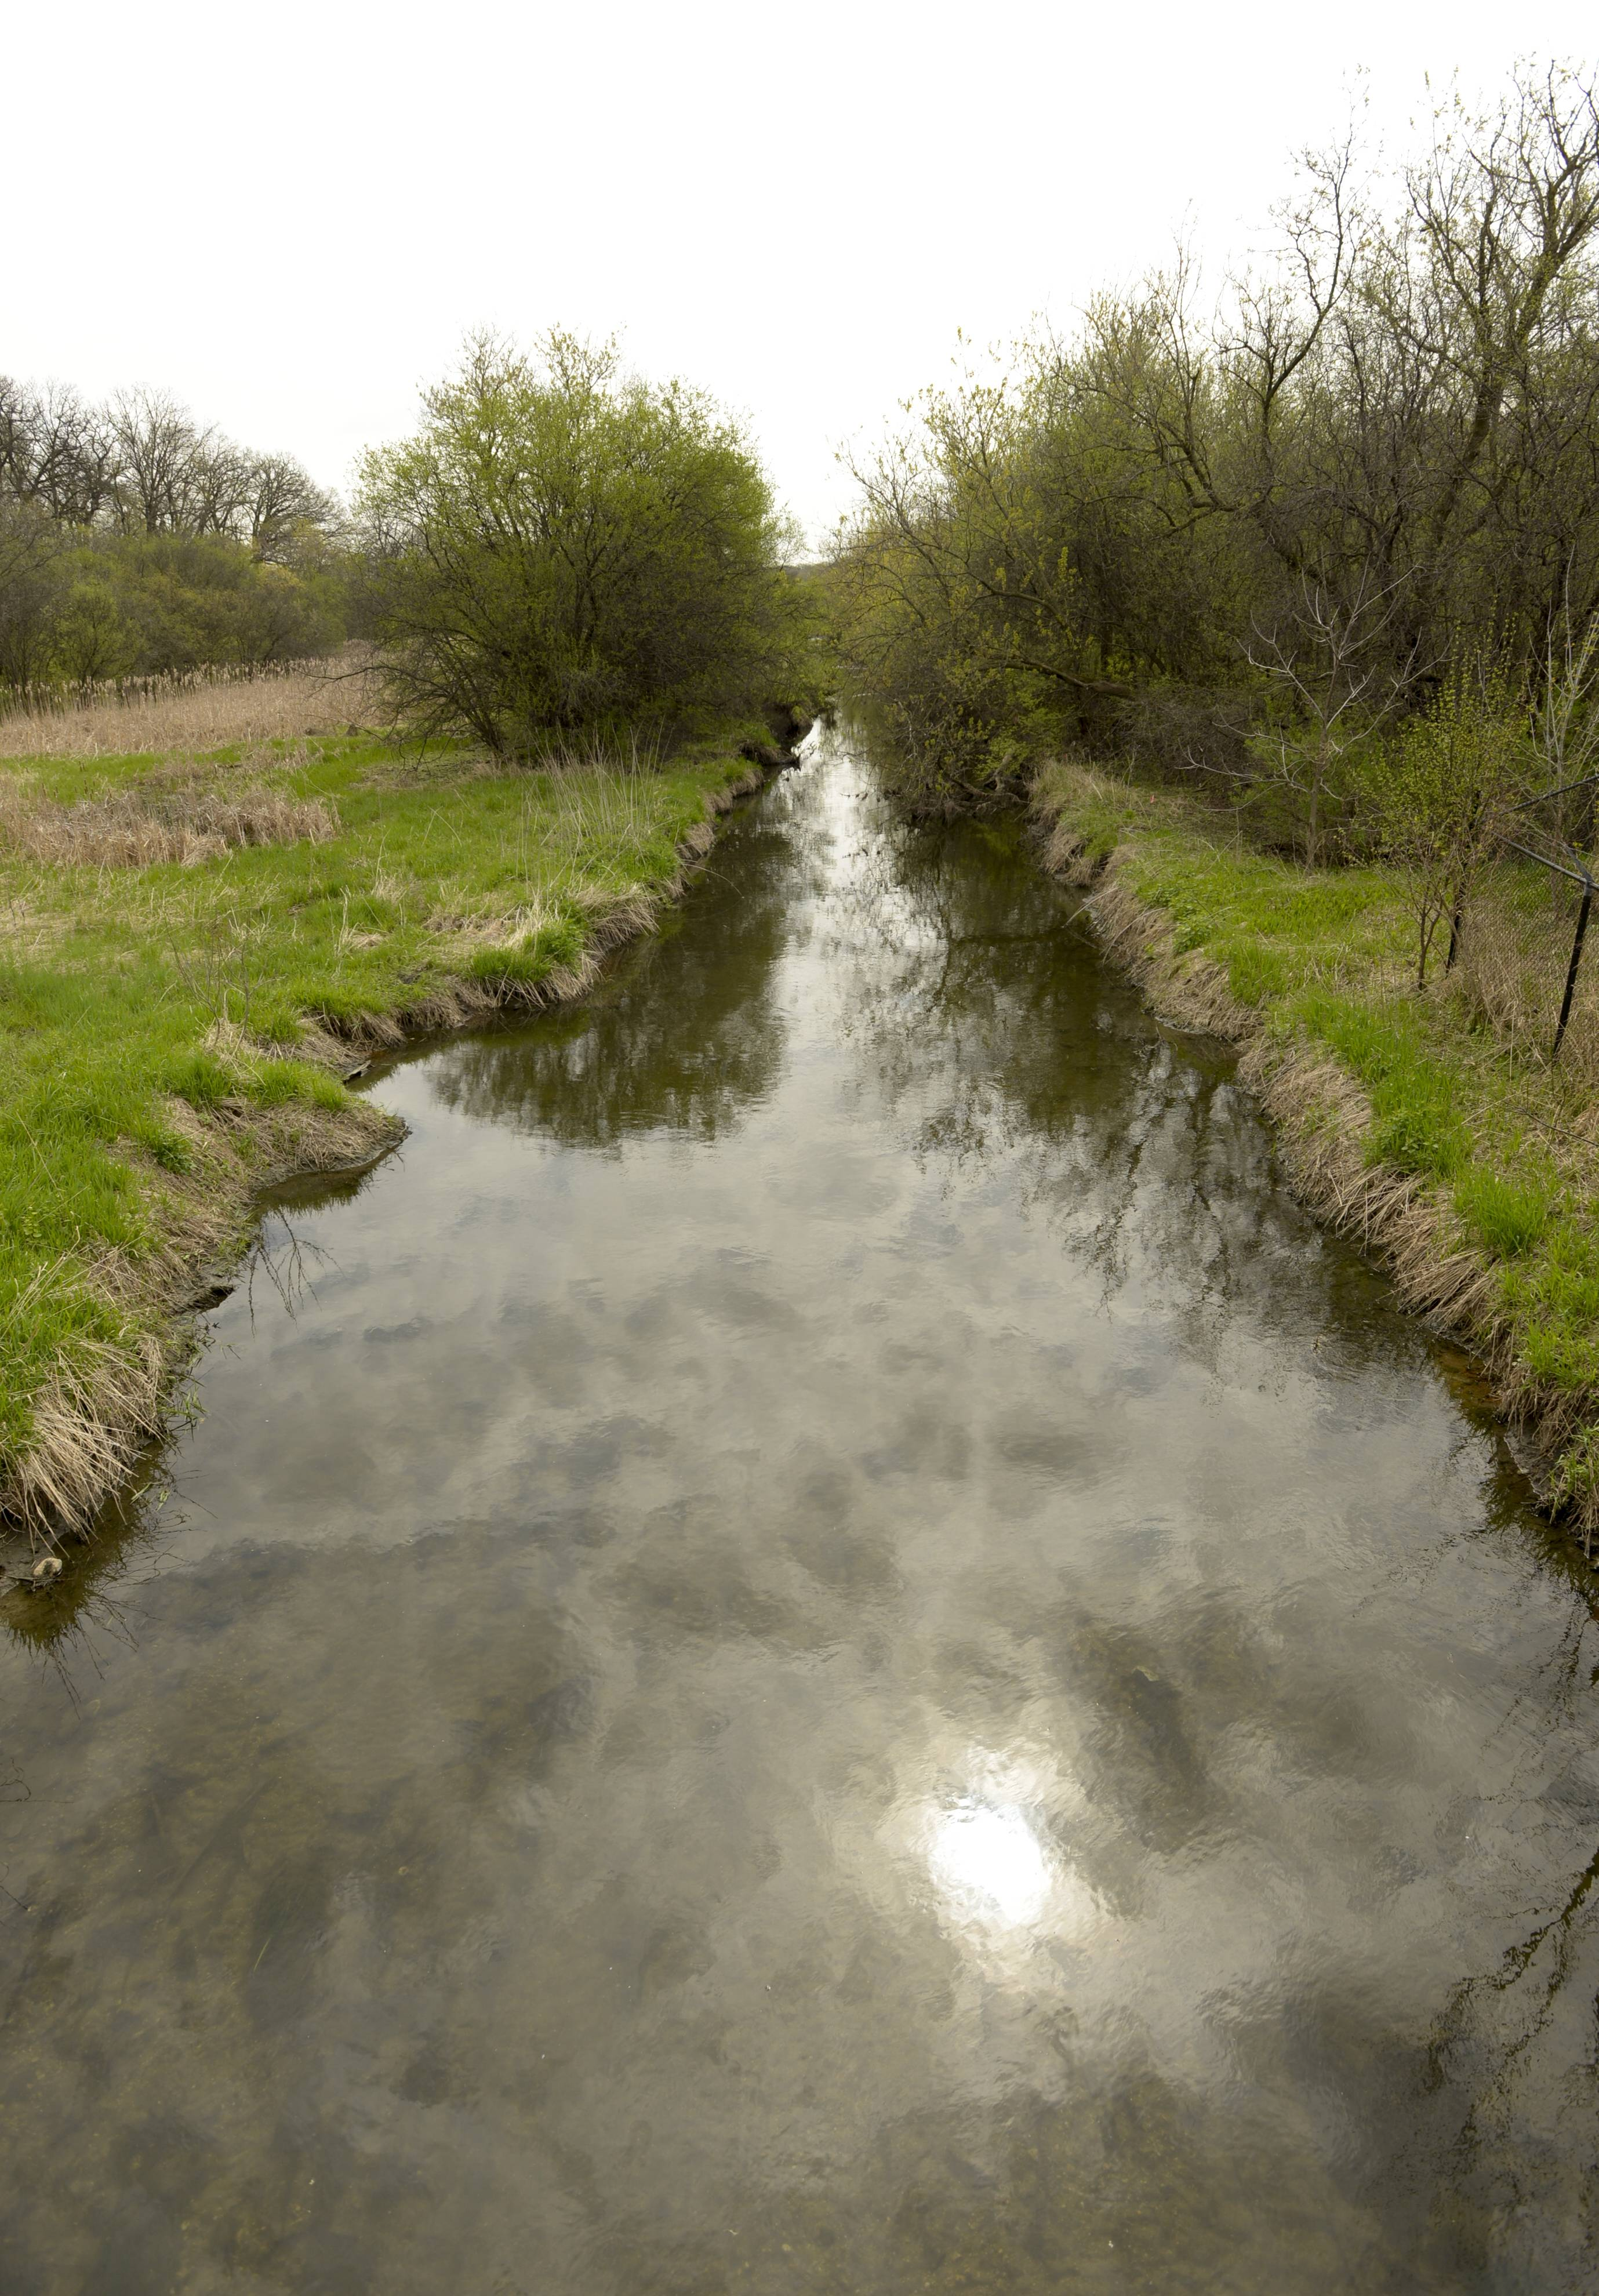 The state tollway authority has agreed to pay for the restoration of a portion of Spring Brook Creek that runs though St. James Farm Forest Preserve near Warrenville.